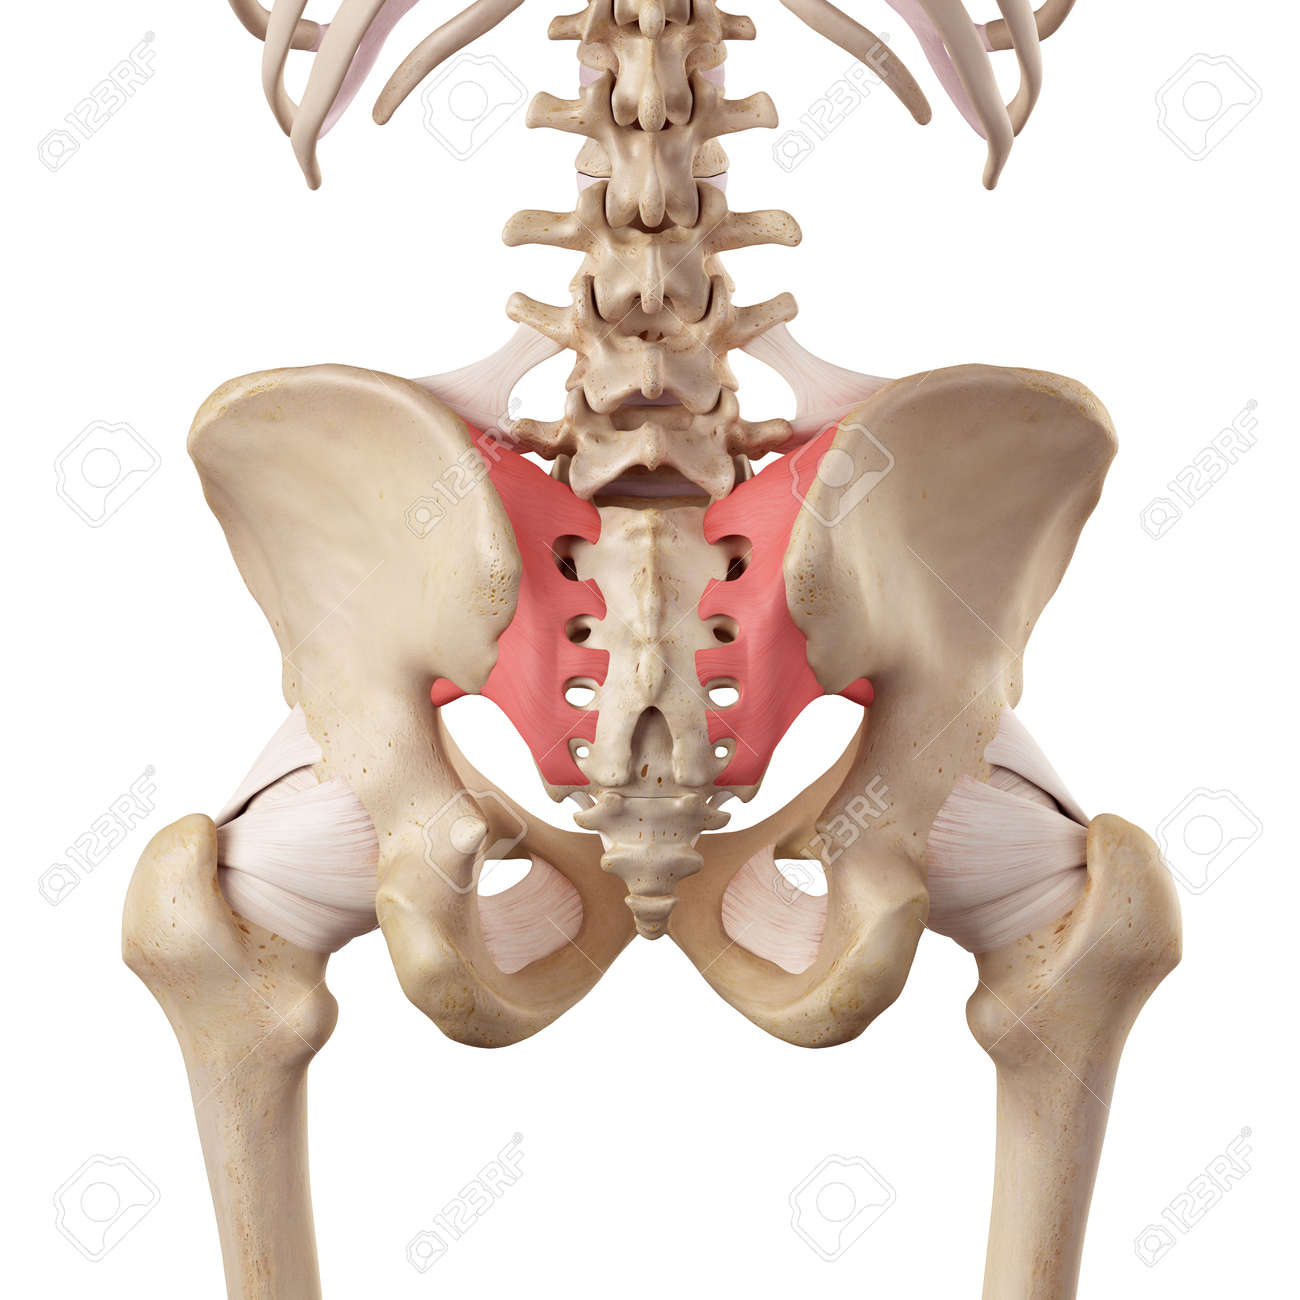 84 Sacroiliac Joint Cliparts, Stock Vector And Royalty Free ...